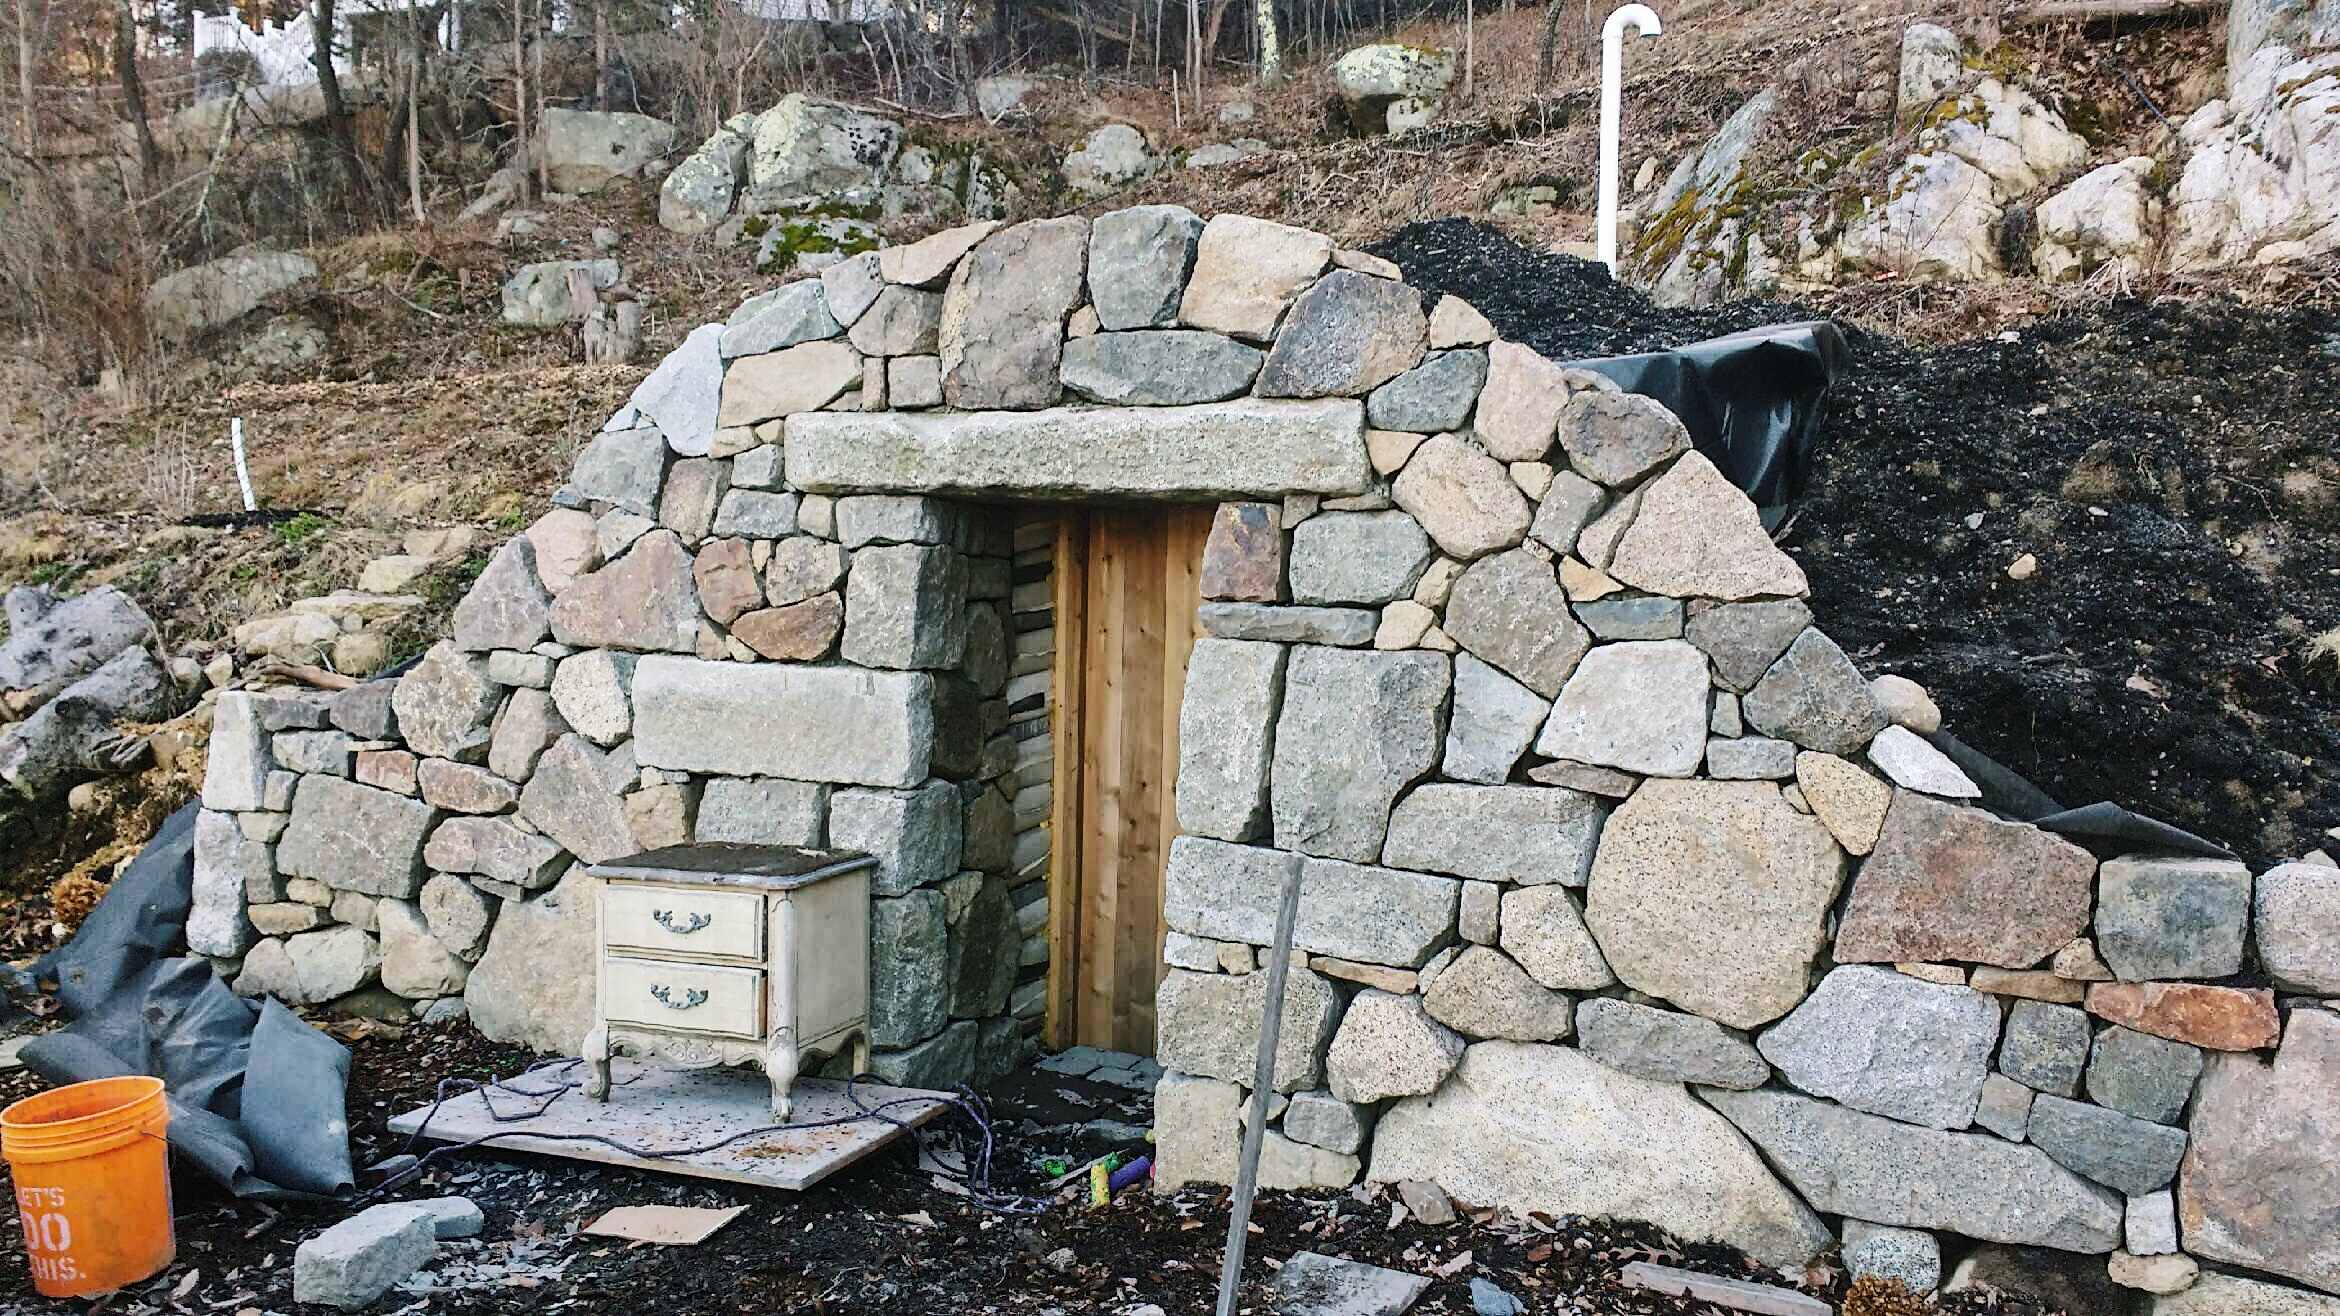 February 2018  Still building that root cellar